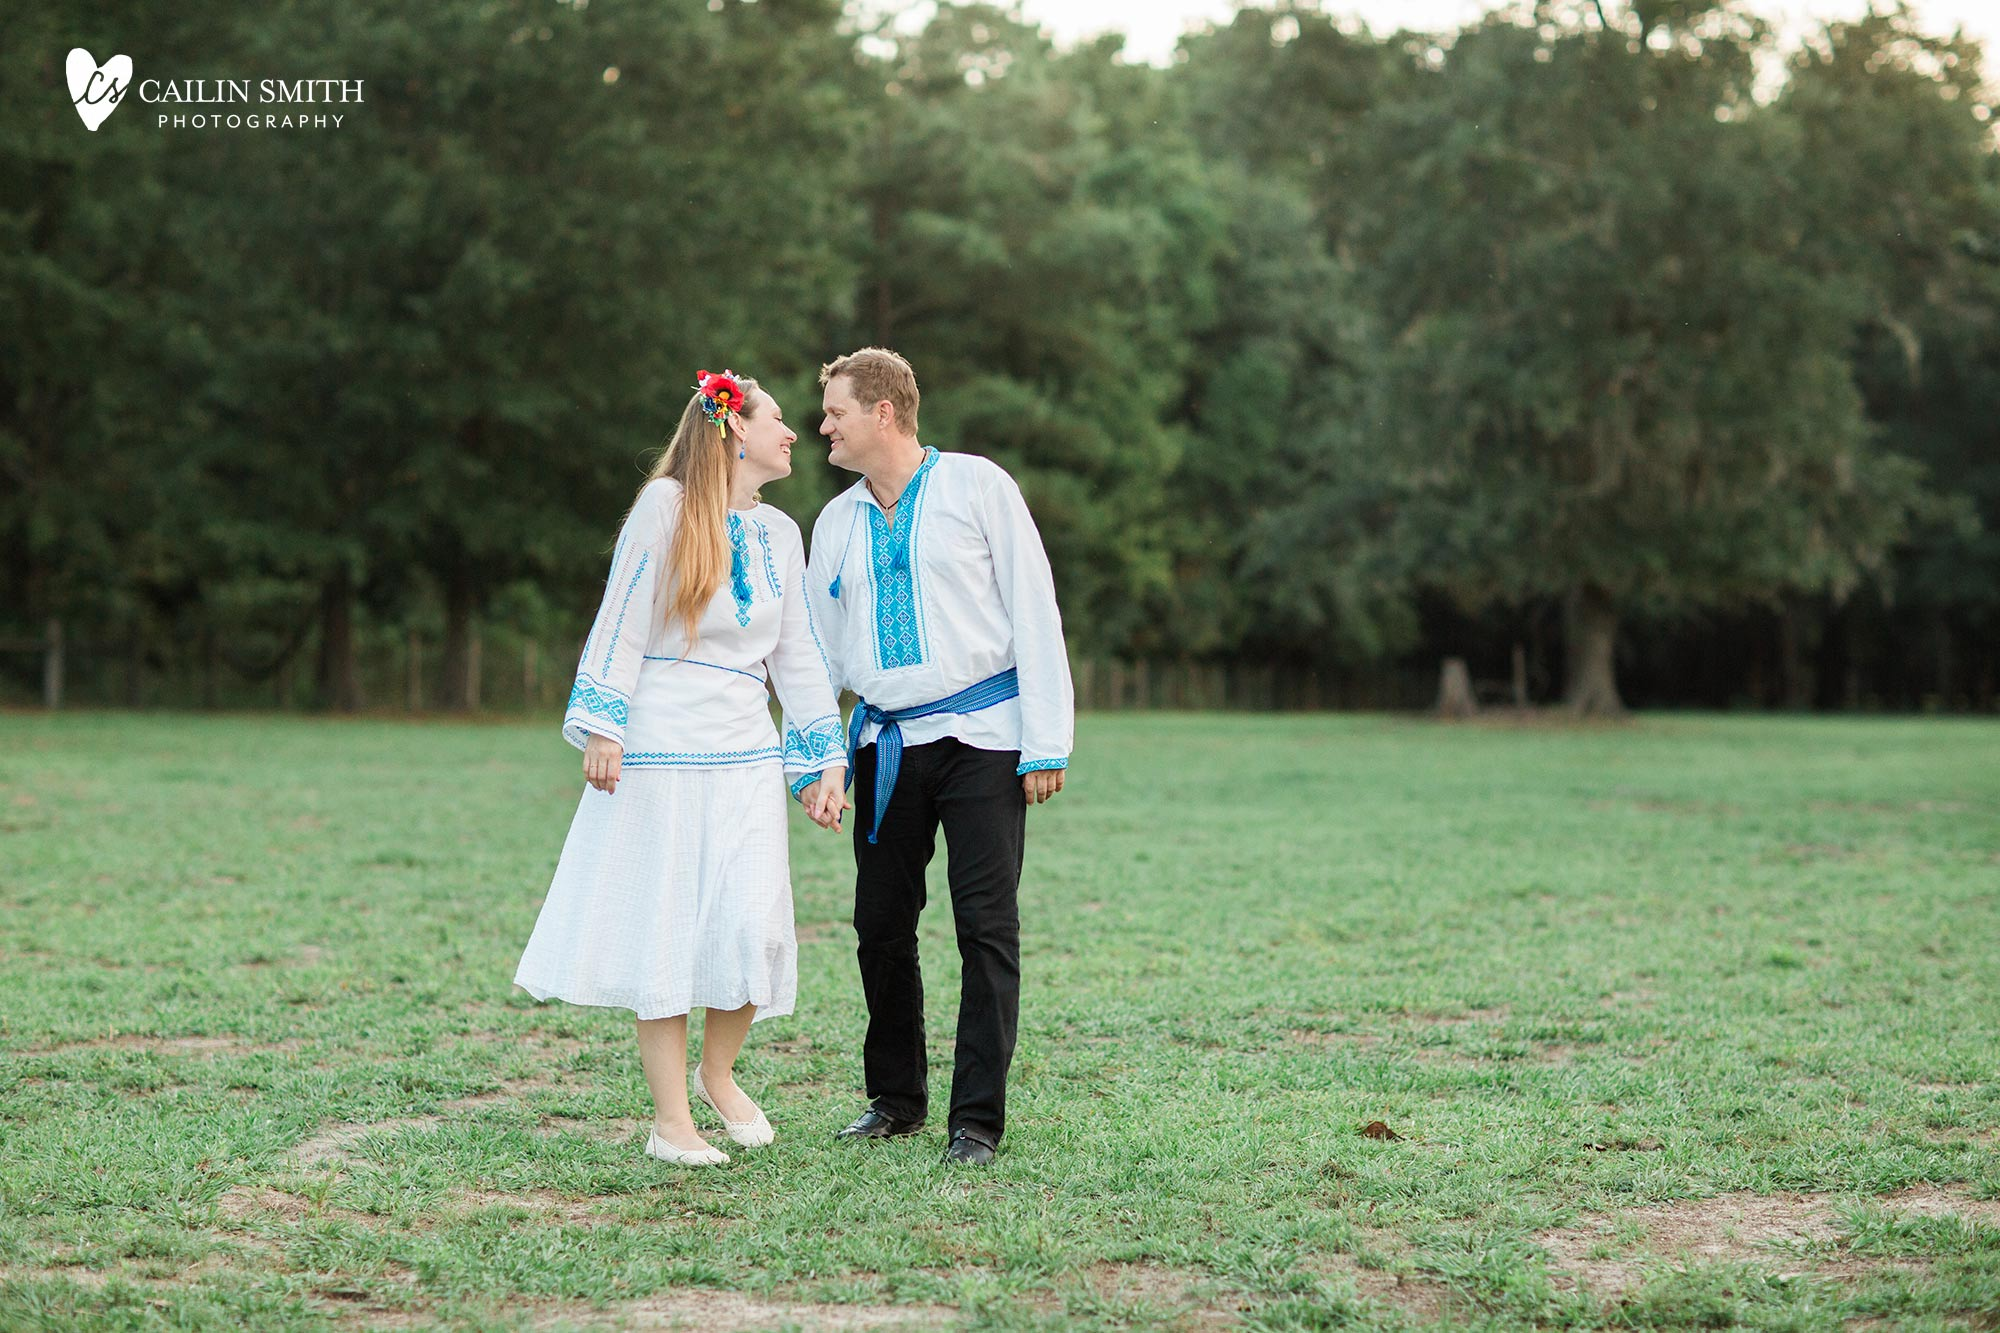 Tetiana_James_Horse_Engagement_Photography_0026.jpg